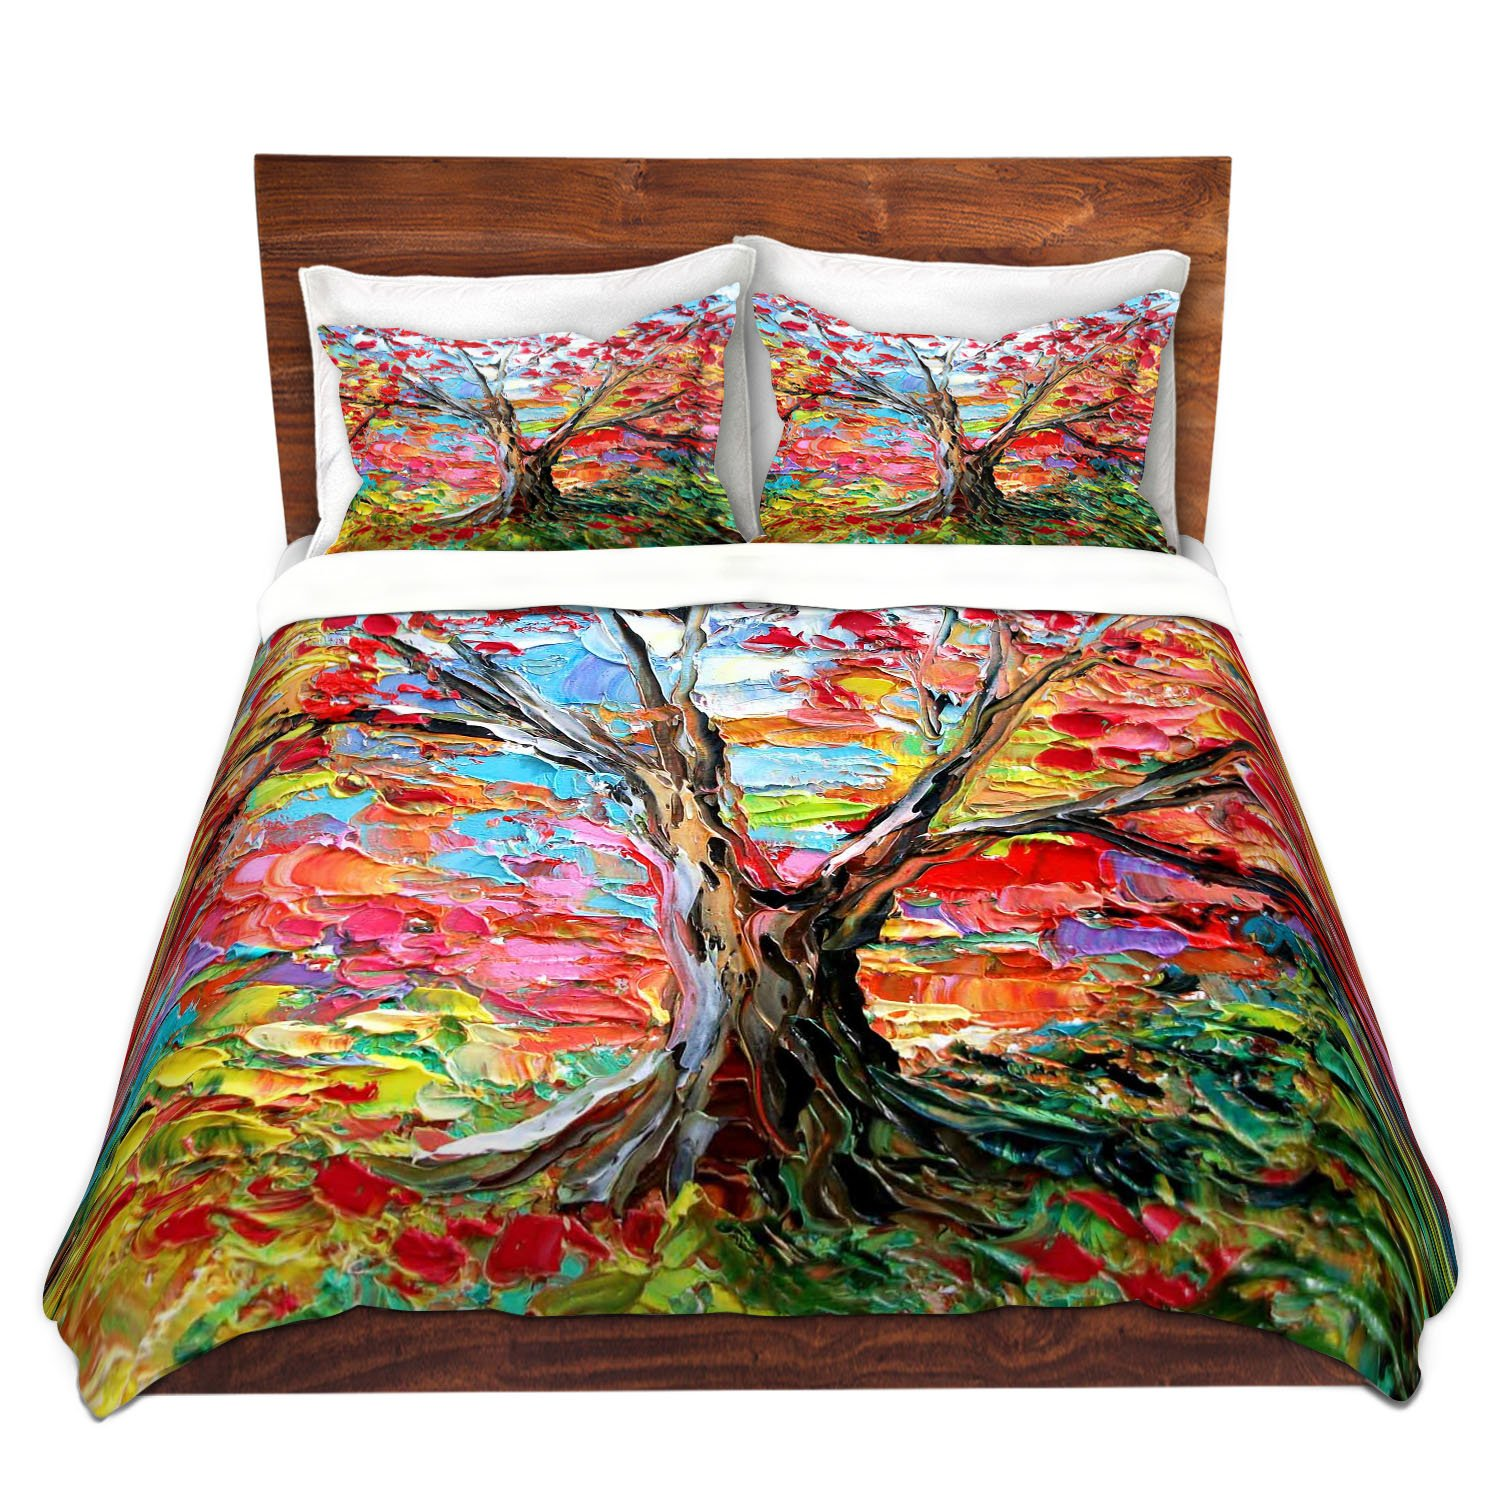 DiaNoche Designs Ann Soura Unique Home Decor Bedding Ideas Story of the Tree 59 Cover, 7 Queen Duvet Sham Set